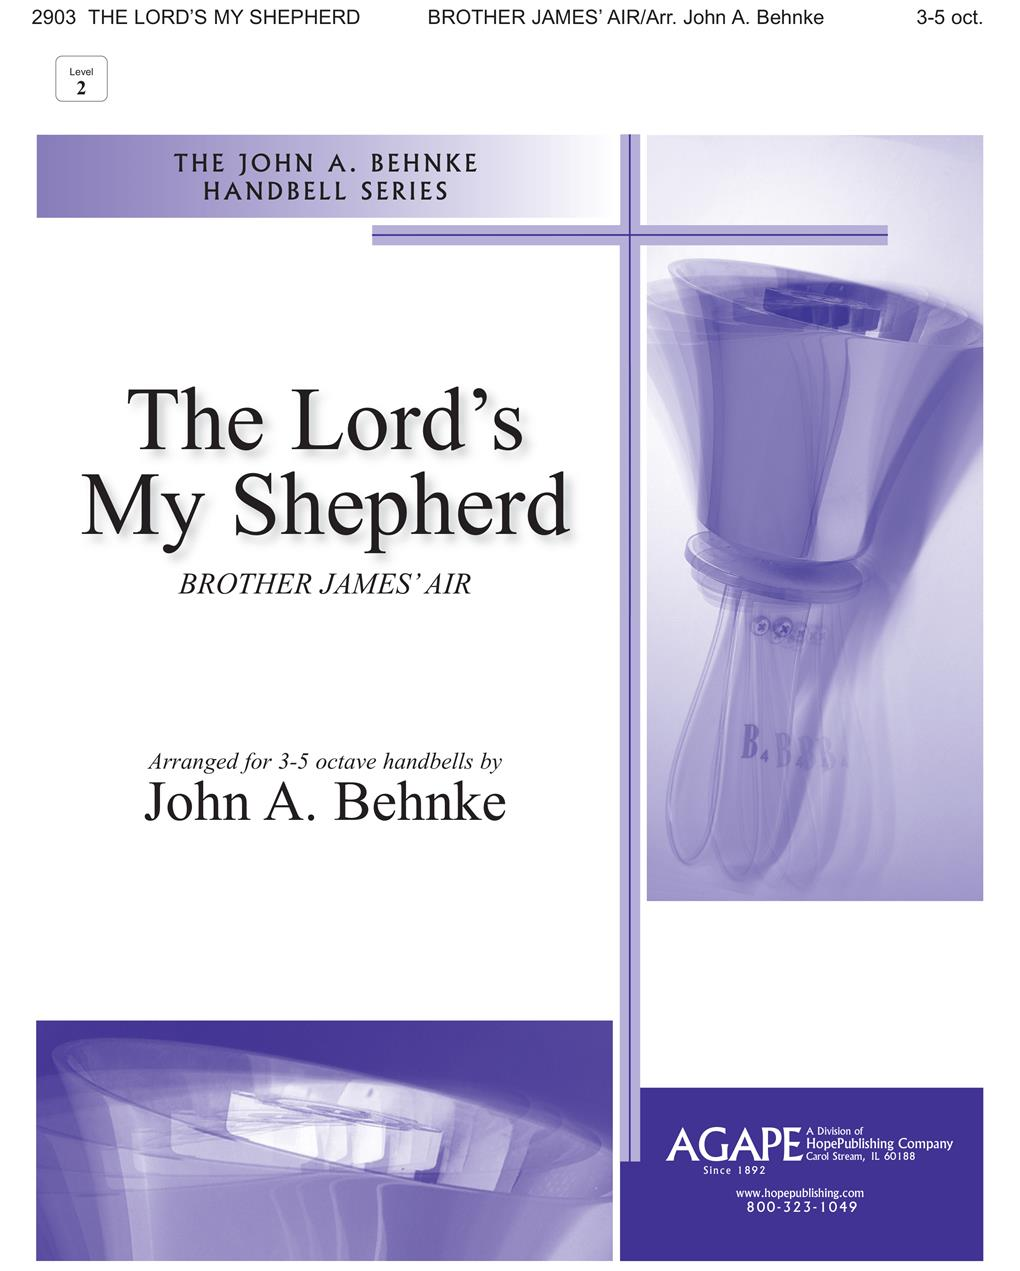 The Lord's My Shepherd - 3-5 Oct. Cover Image